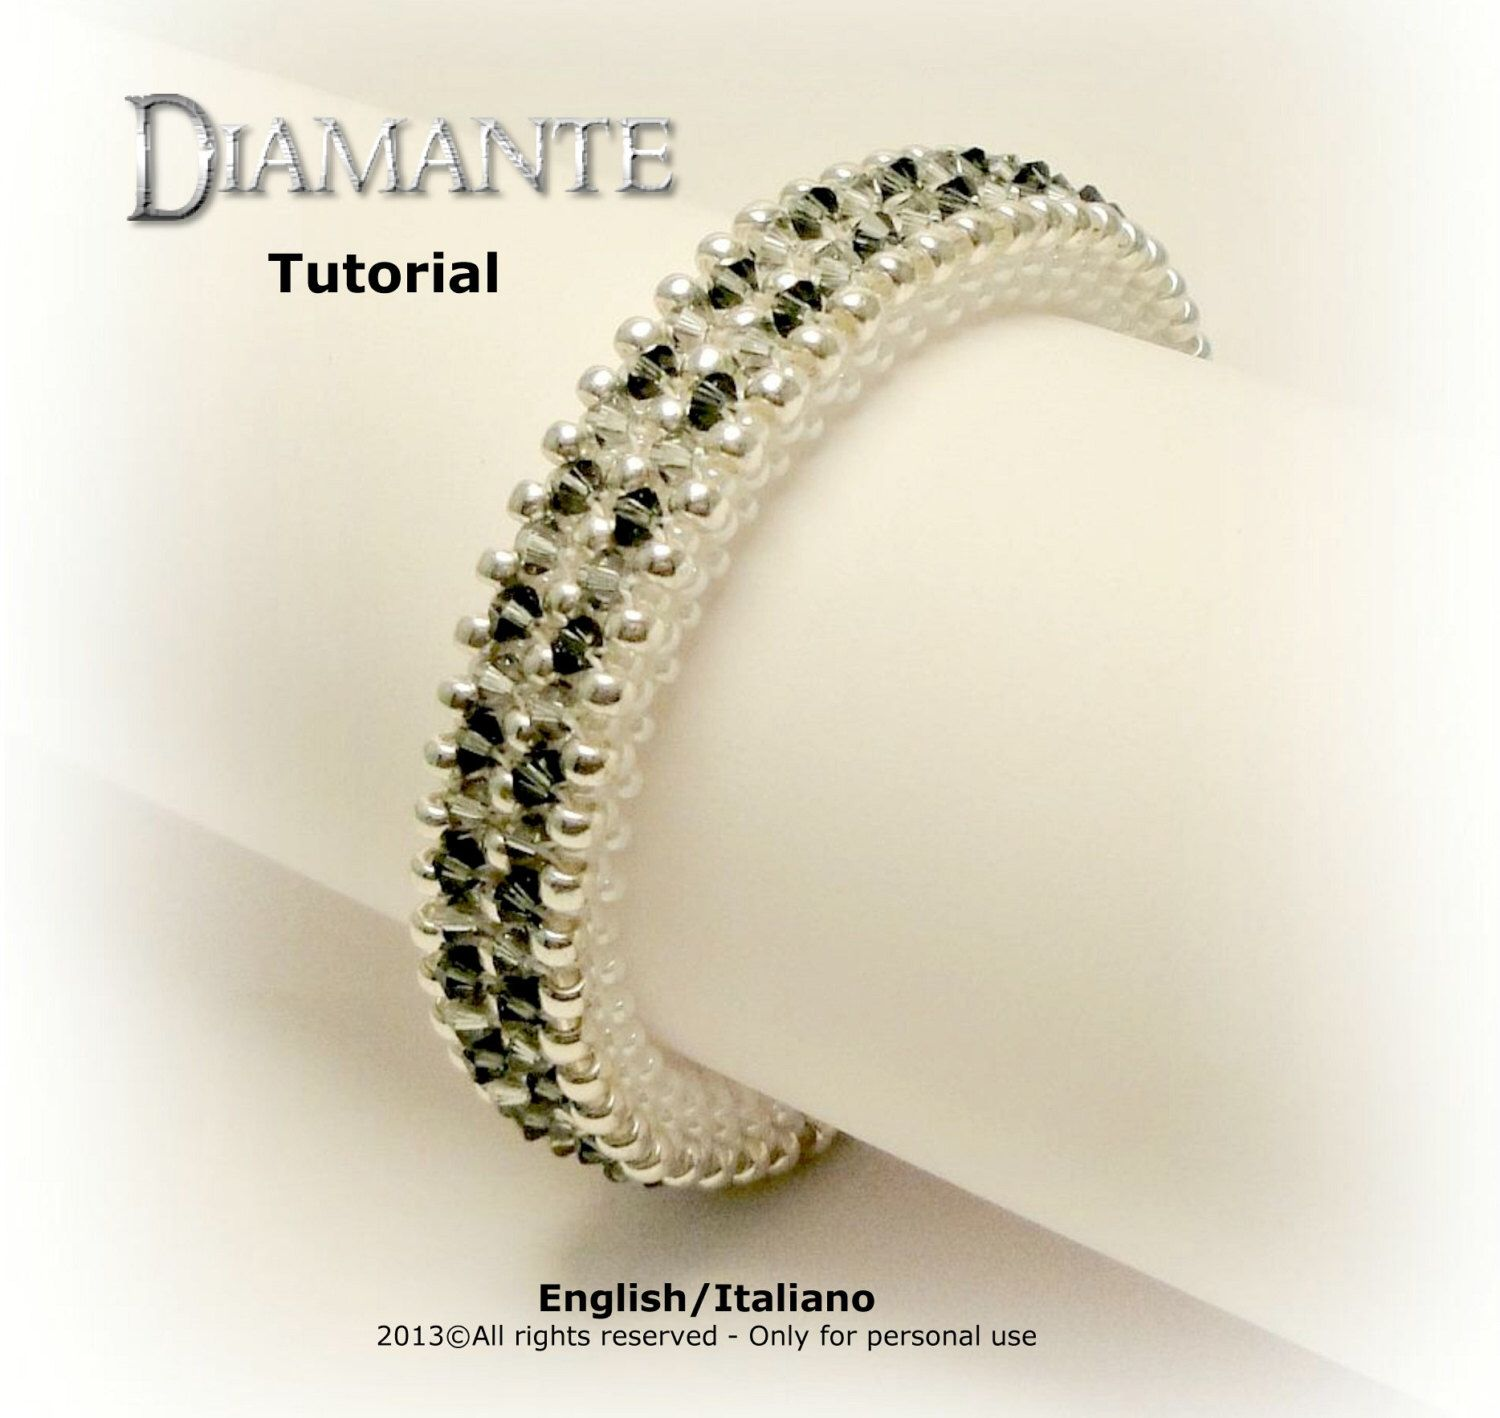 Tutorial diamante bangle beading pattern par fucsiastyle sur etsy